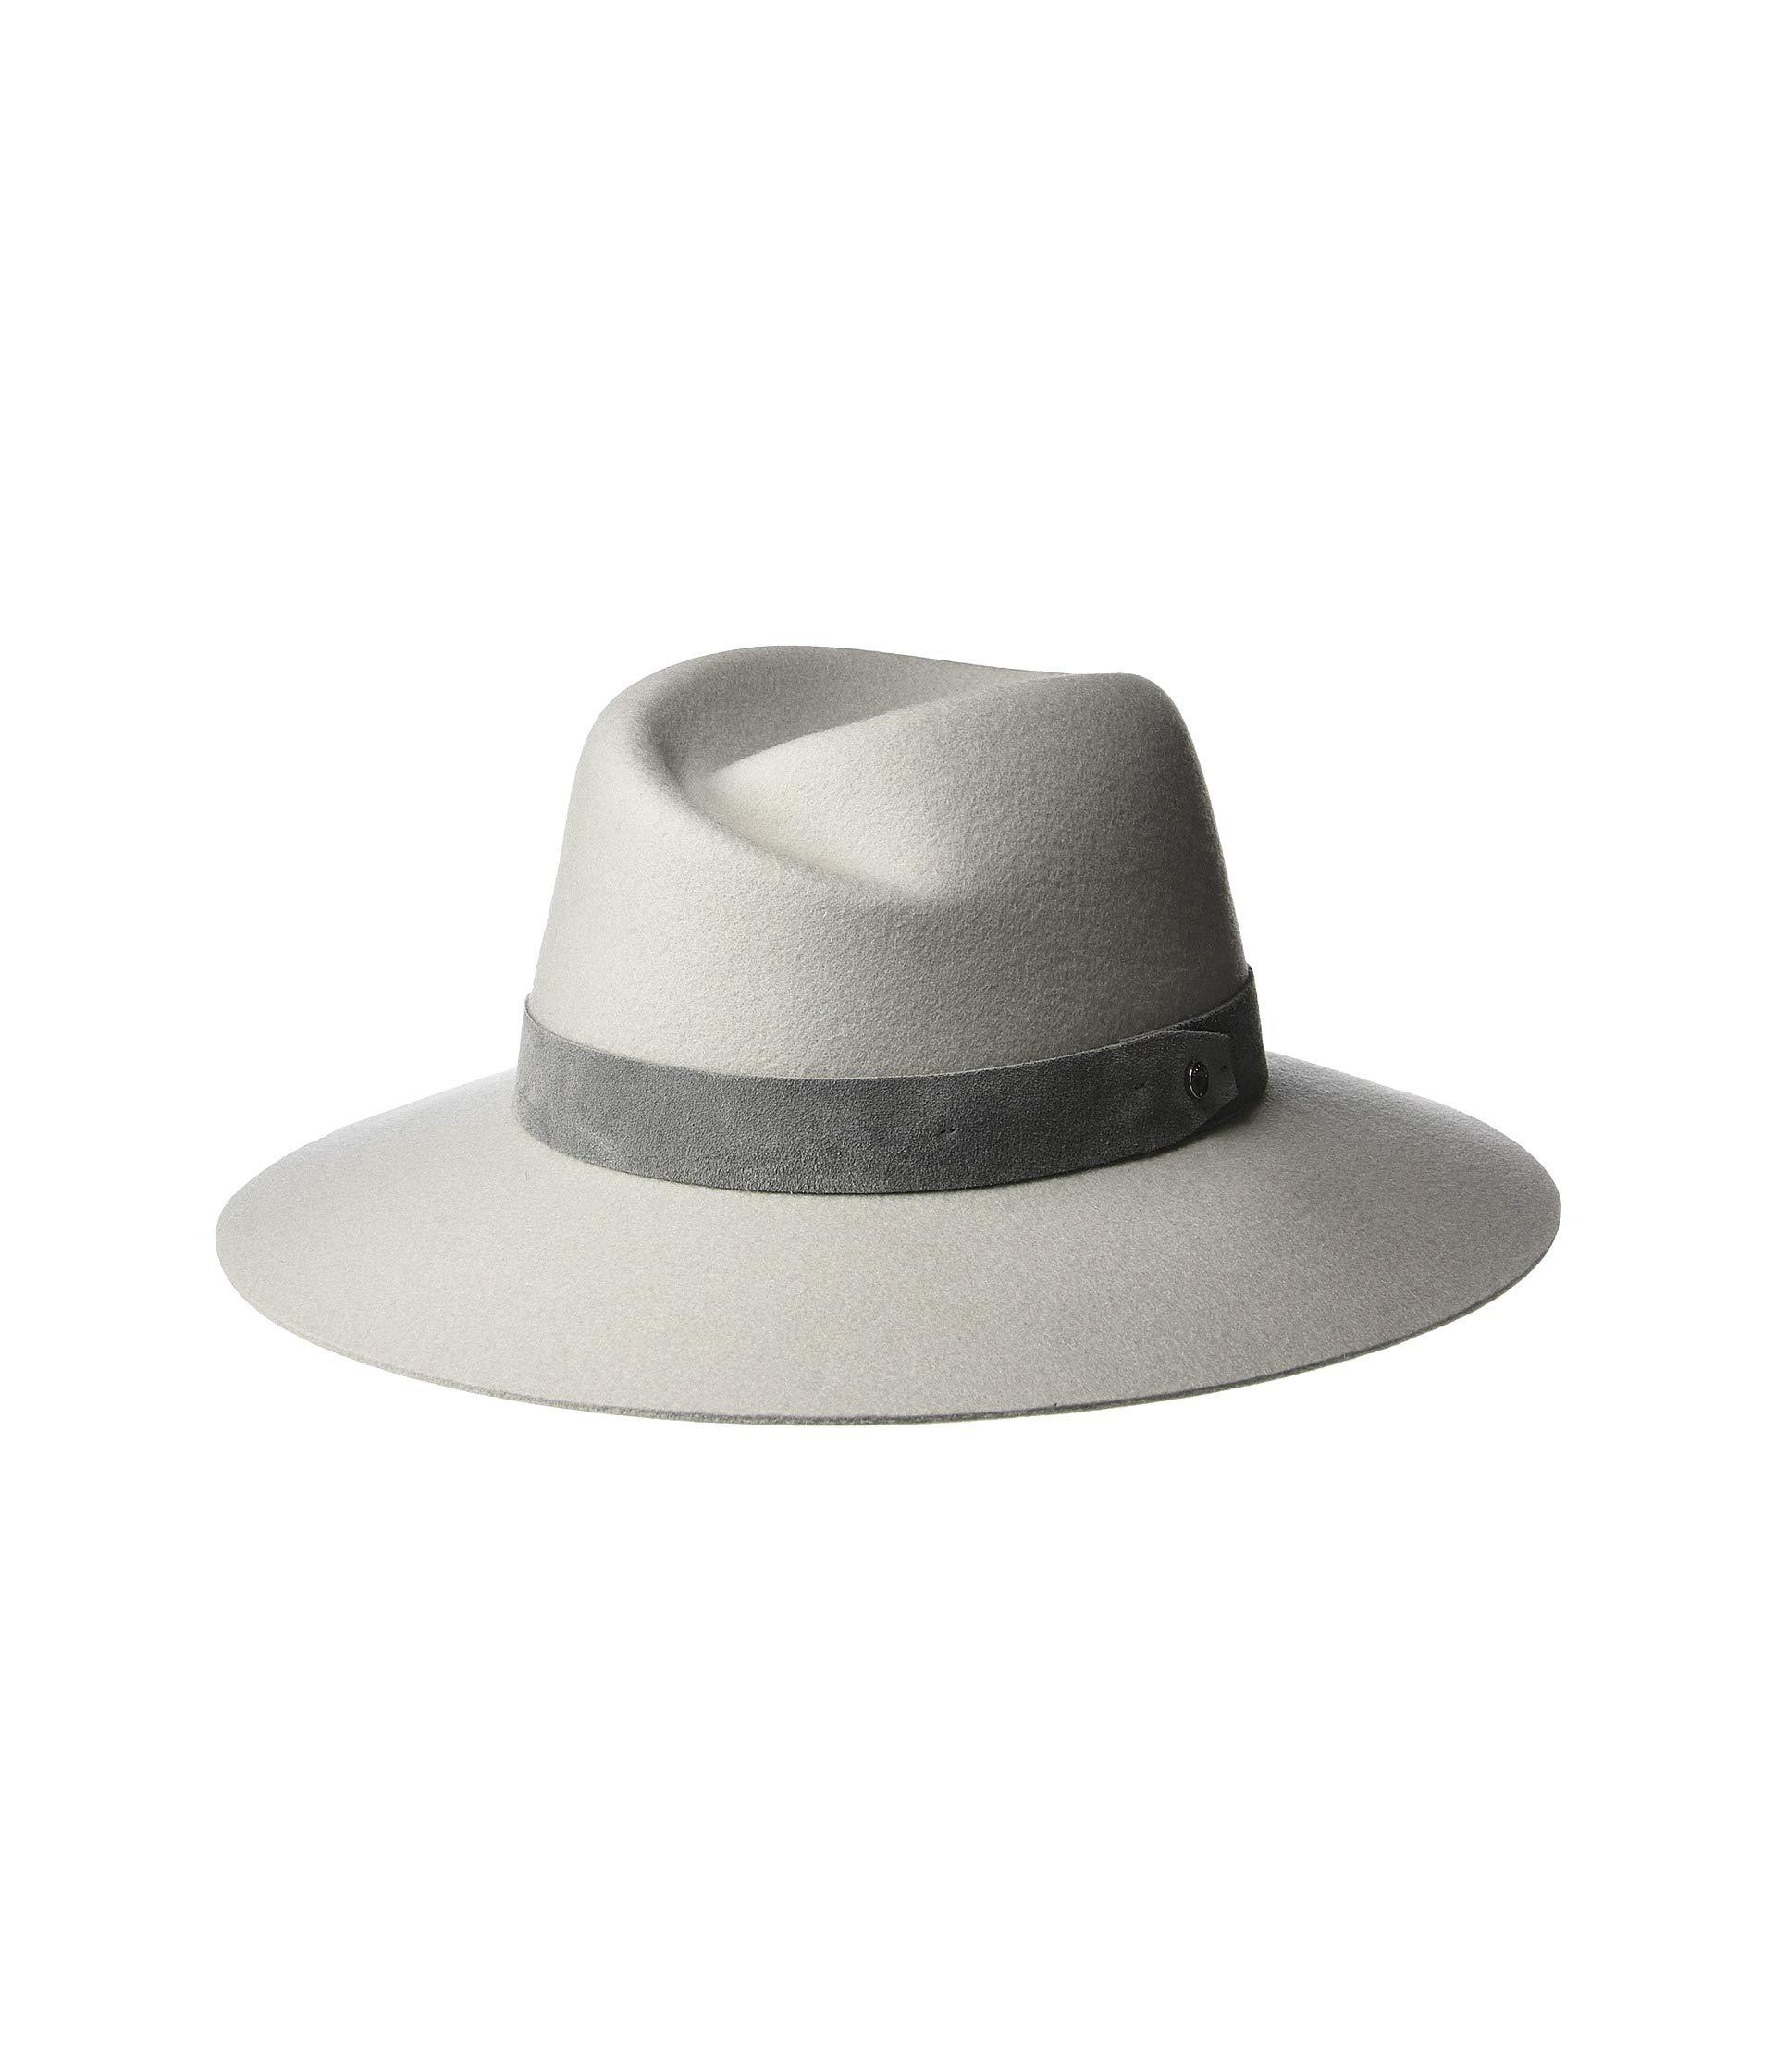 Lyst - Rag   Bone Zoe Fedora (dove) Fedora Hats in Gray 7988666ea9f2